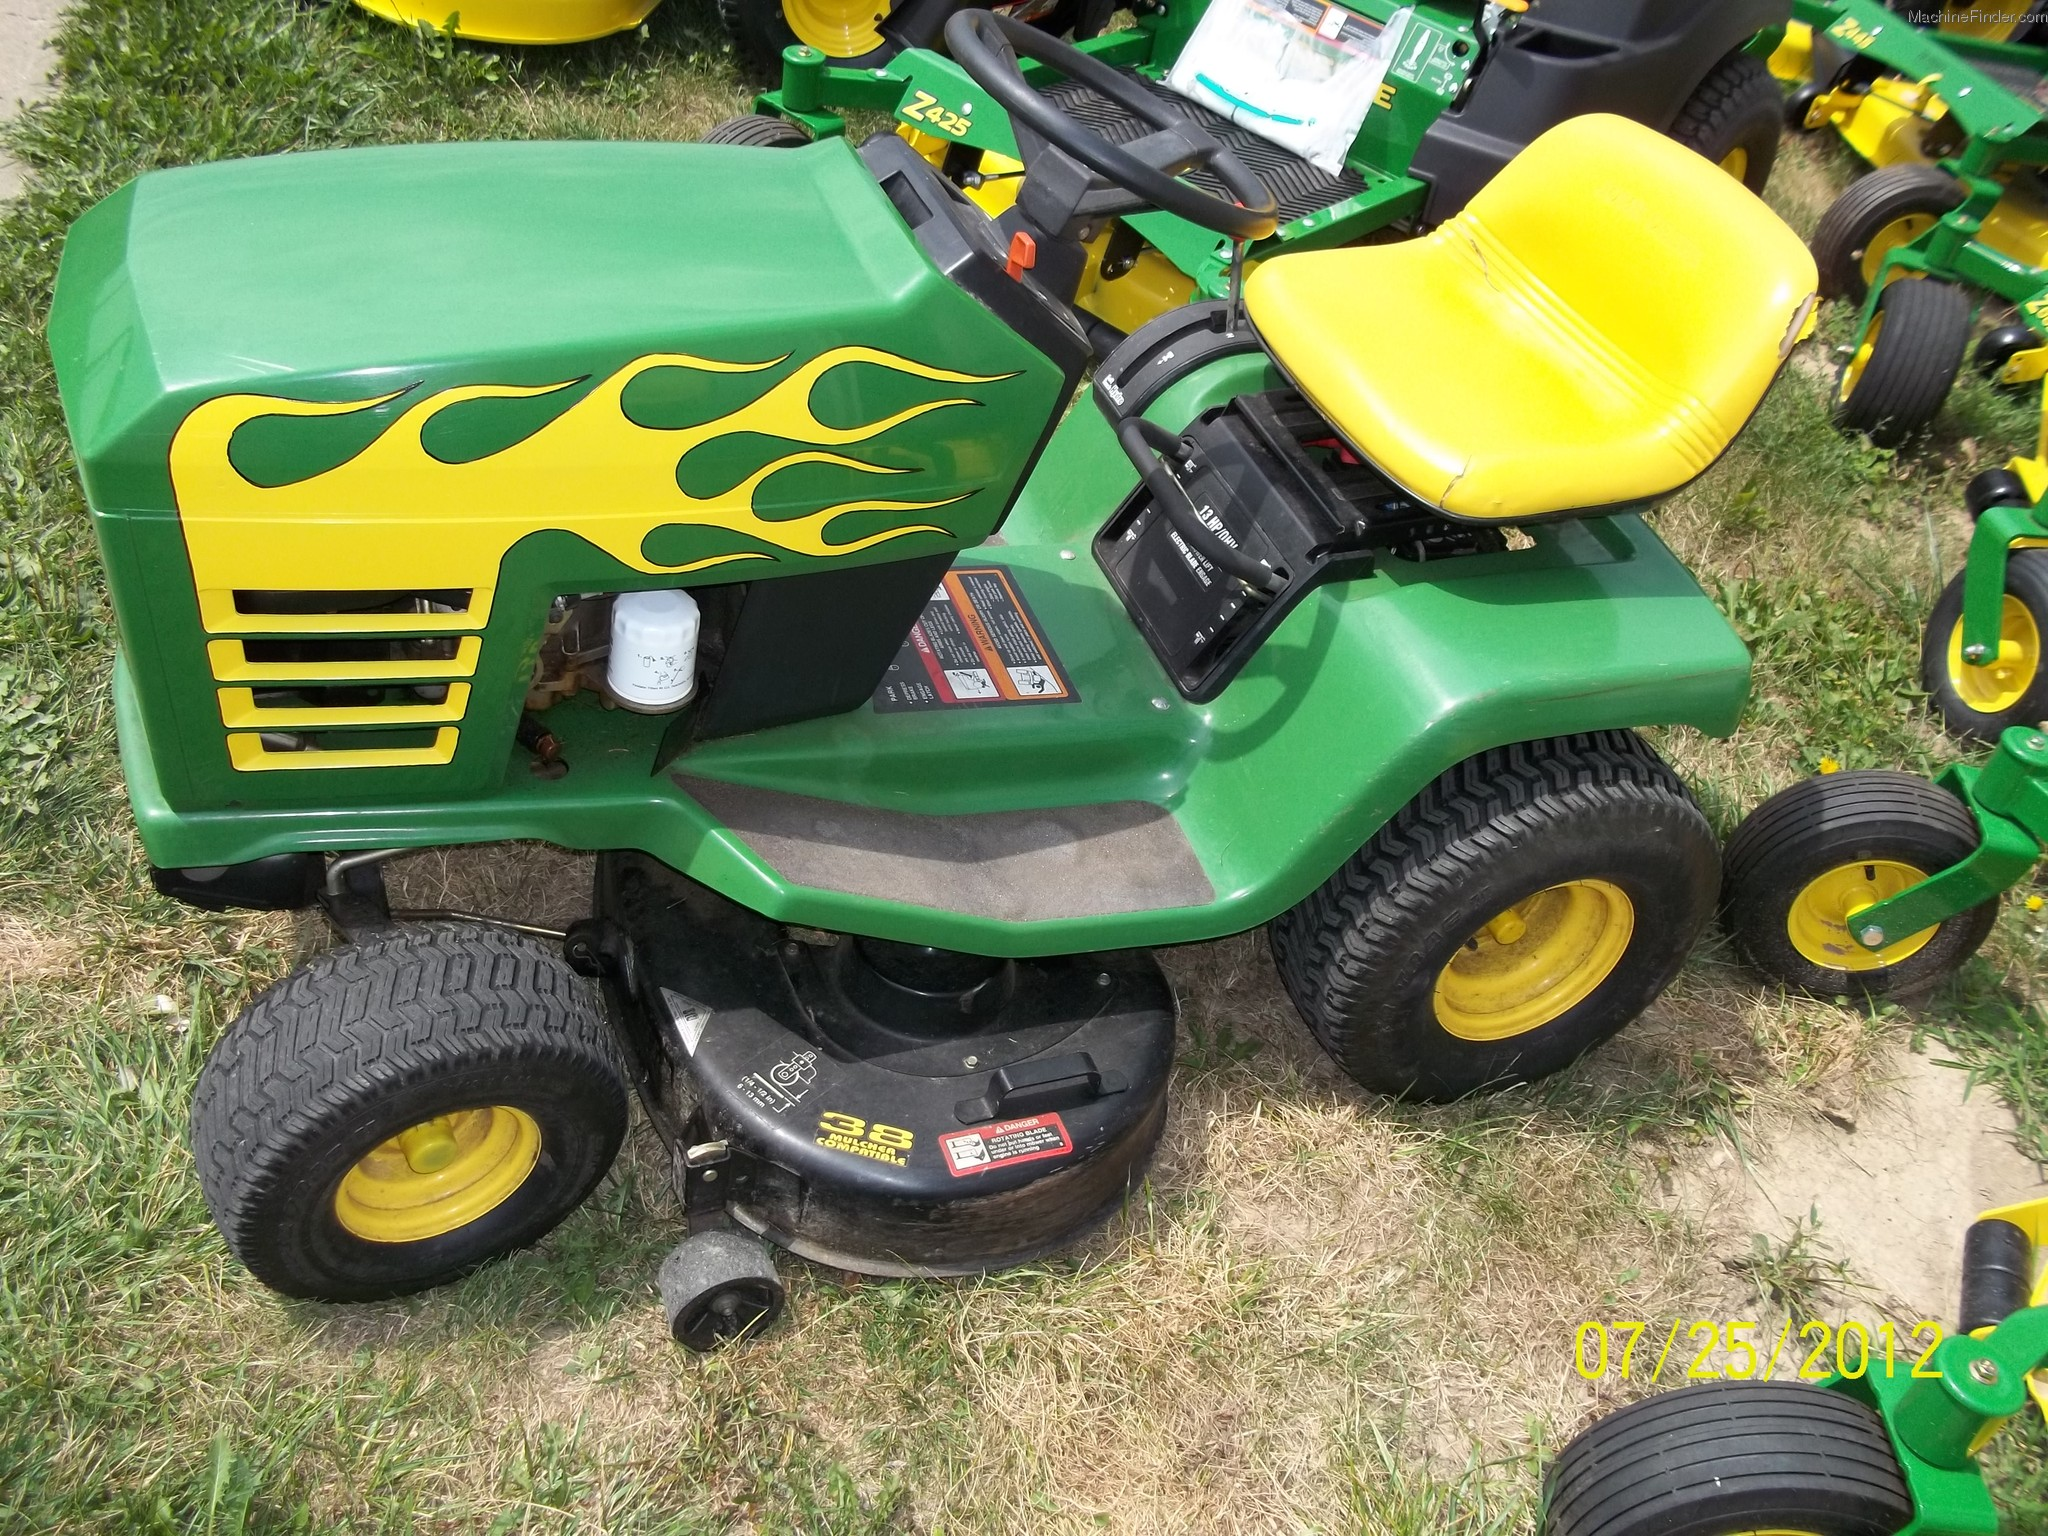 1996 John Deere Stx38 Lawn Amp Garden And Commercial Mowing